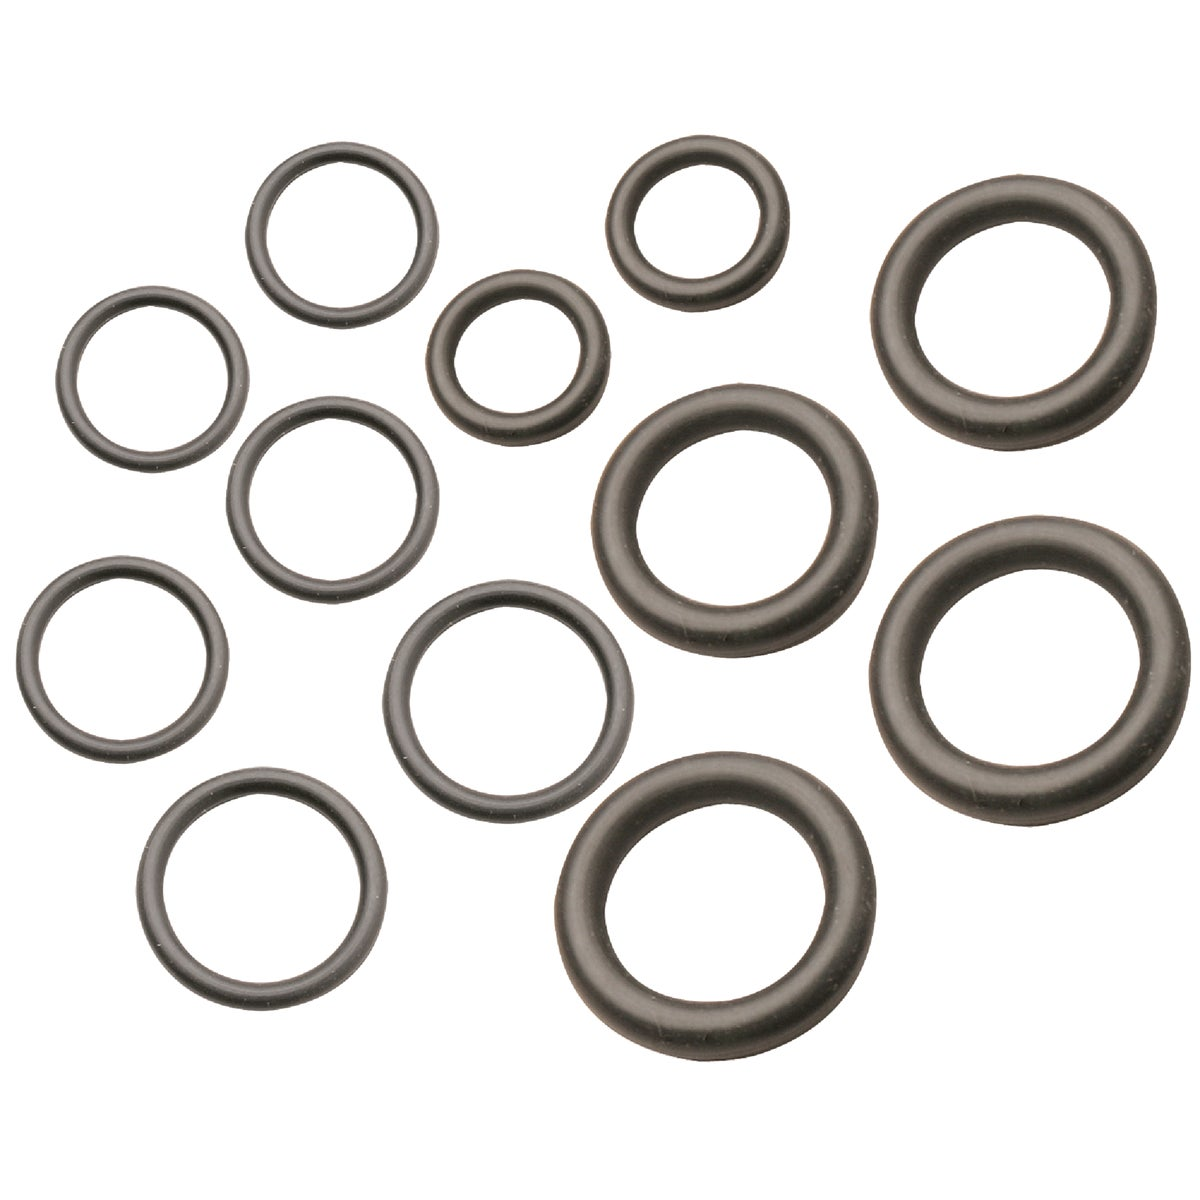 ASSORTED LARGE O-RINGS